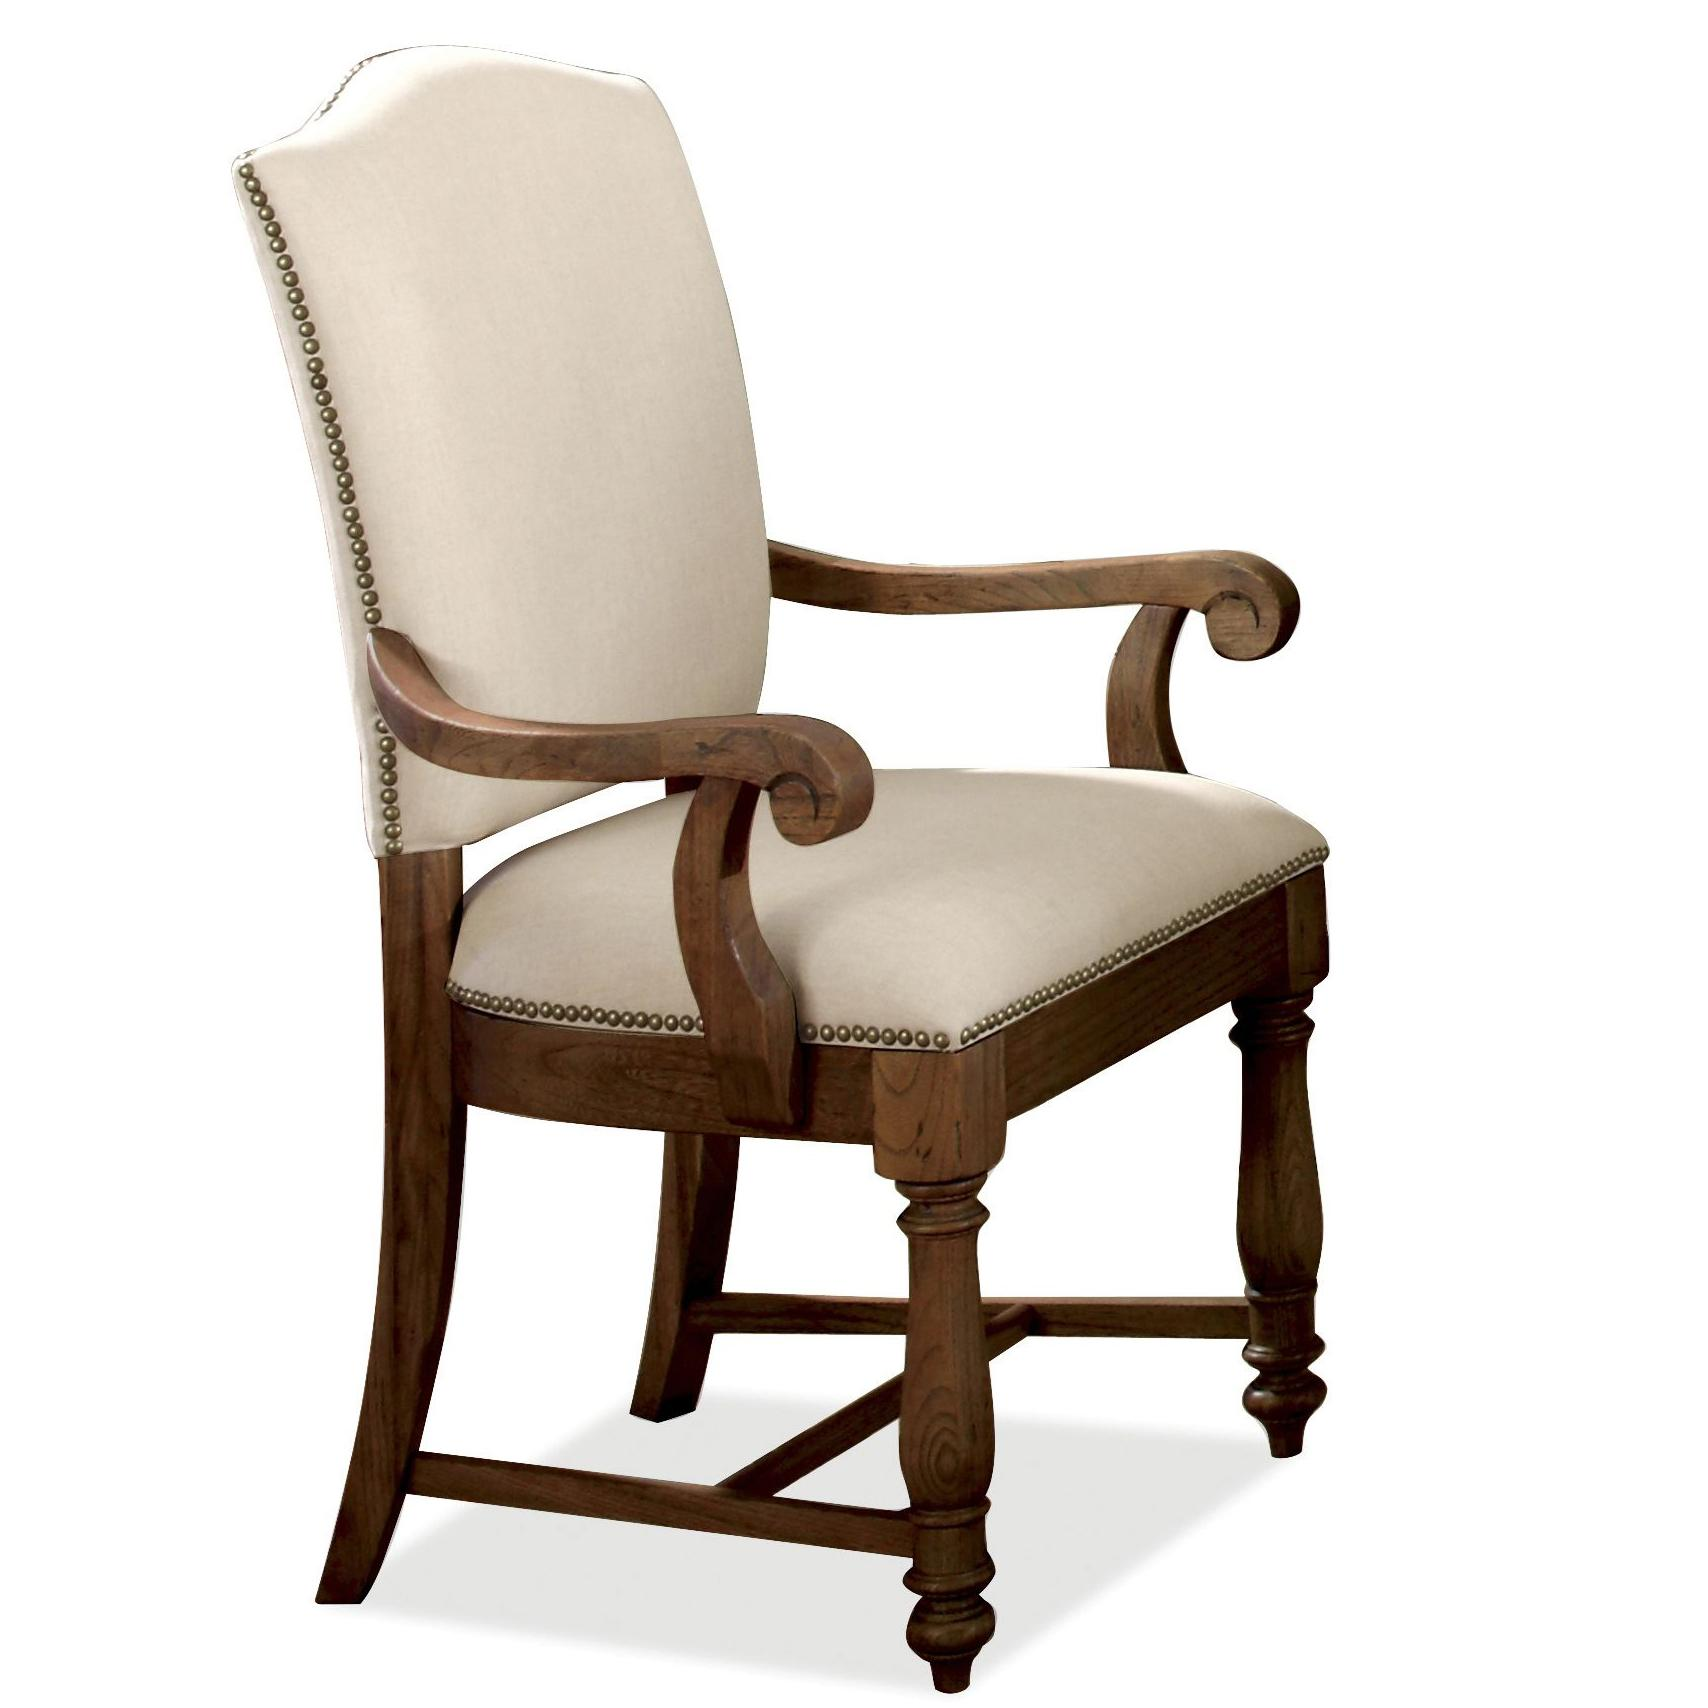 Wonderful image of Castlewood Upholstered Dining Arm Chair with Nailhead Trim and Wooden  with #341A0B color and 1708x1708 pixels